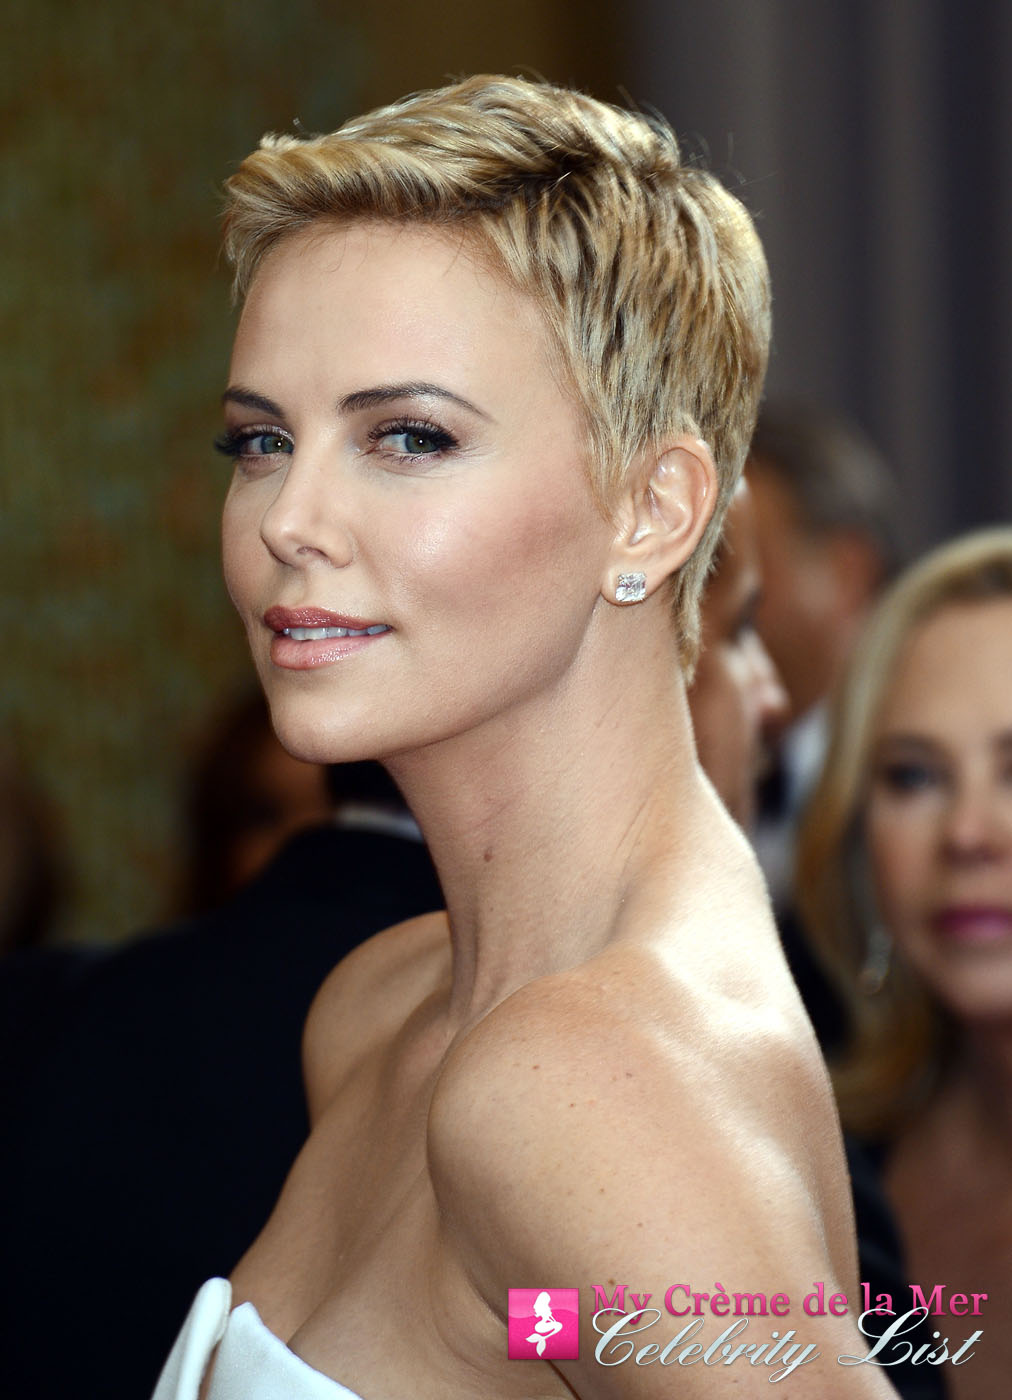 Charlize Theron is now on the My Crème de la Mer Celebrity List. The gorgeous actress uses La Mer and says this about The Lip Balm;